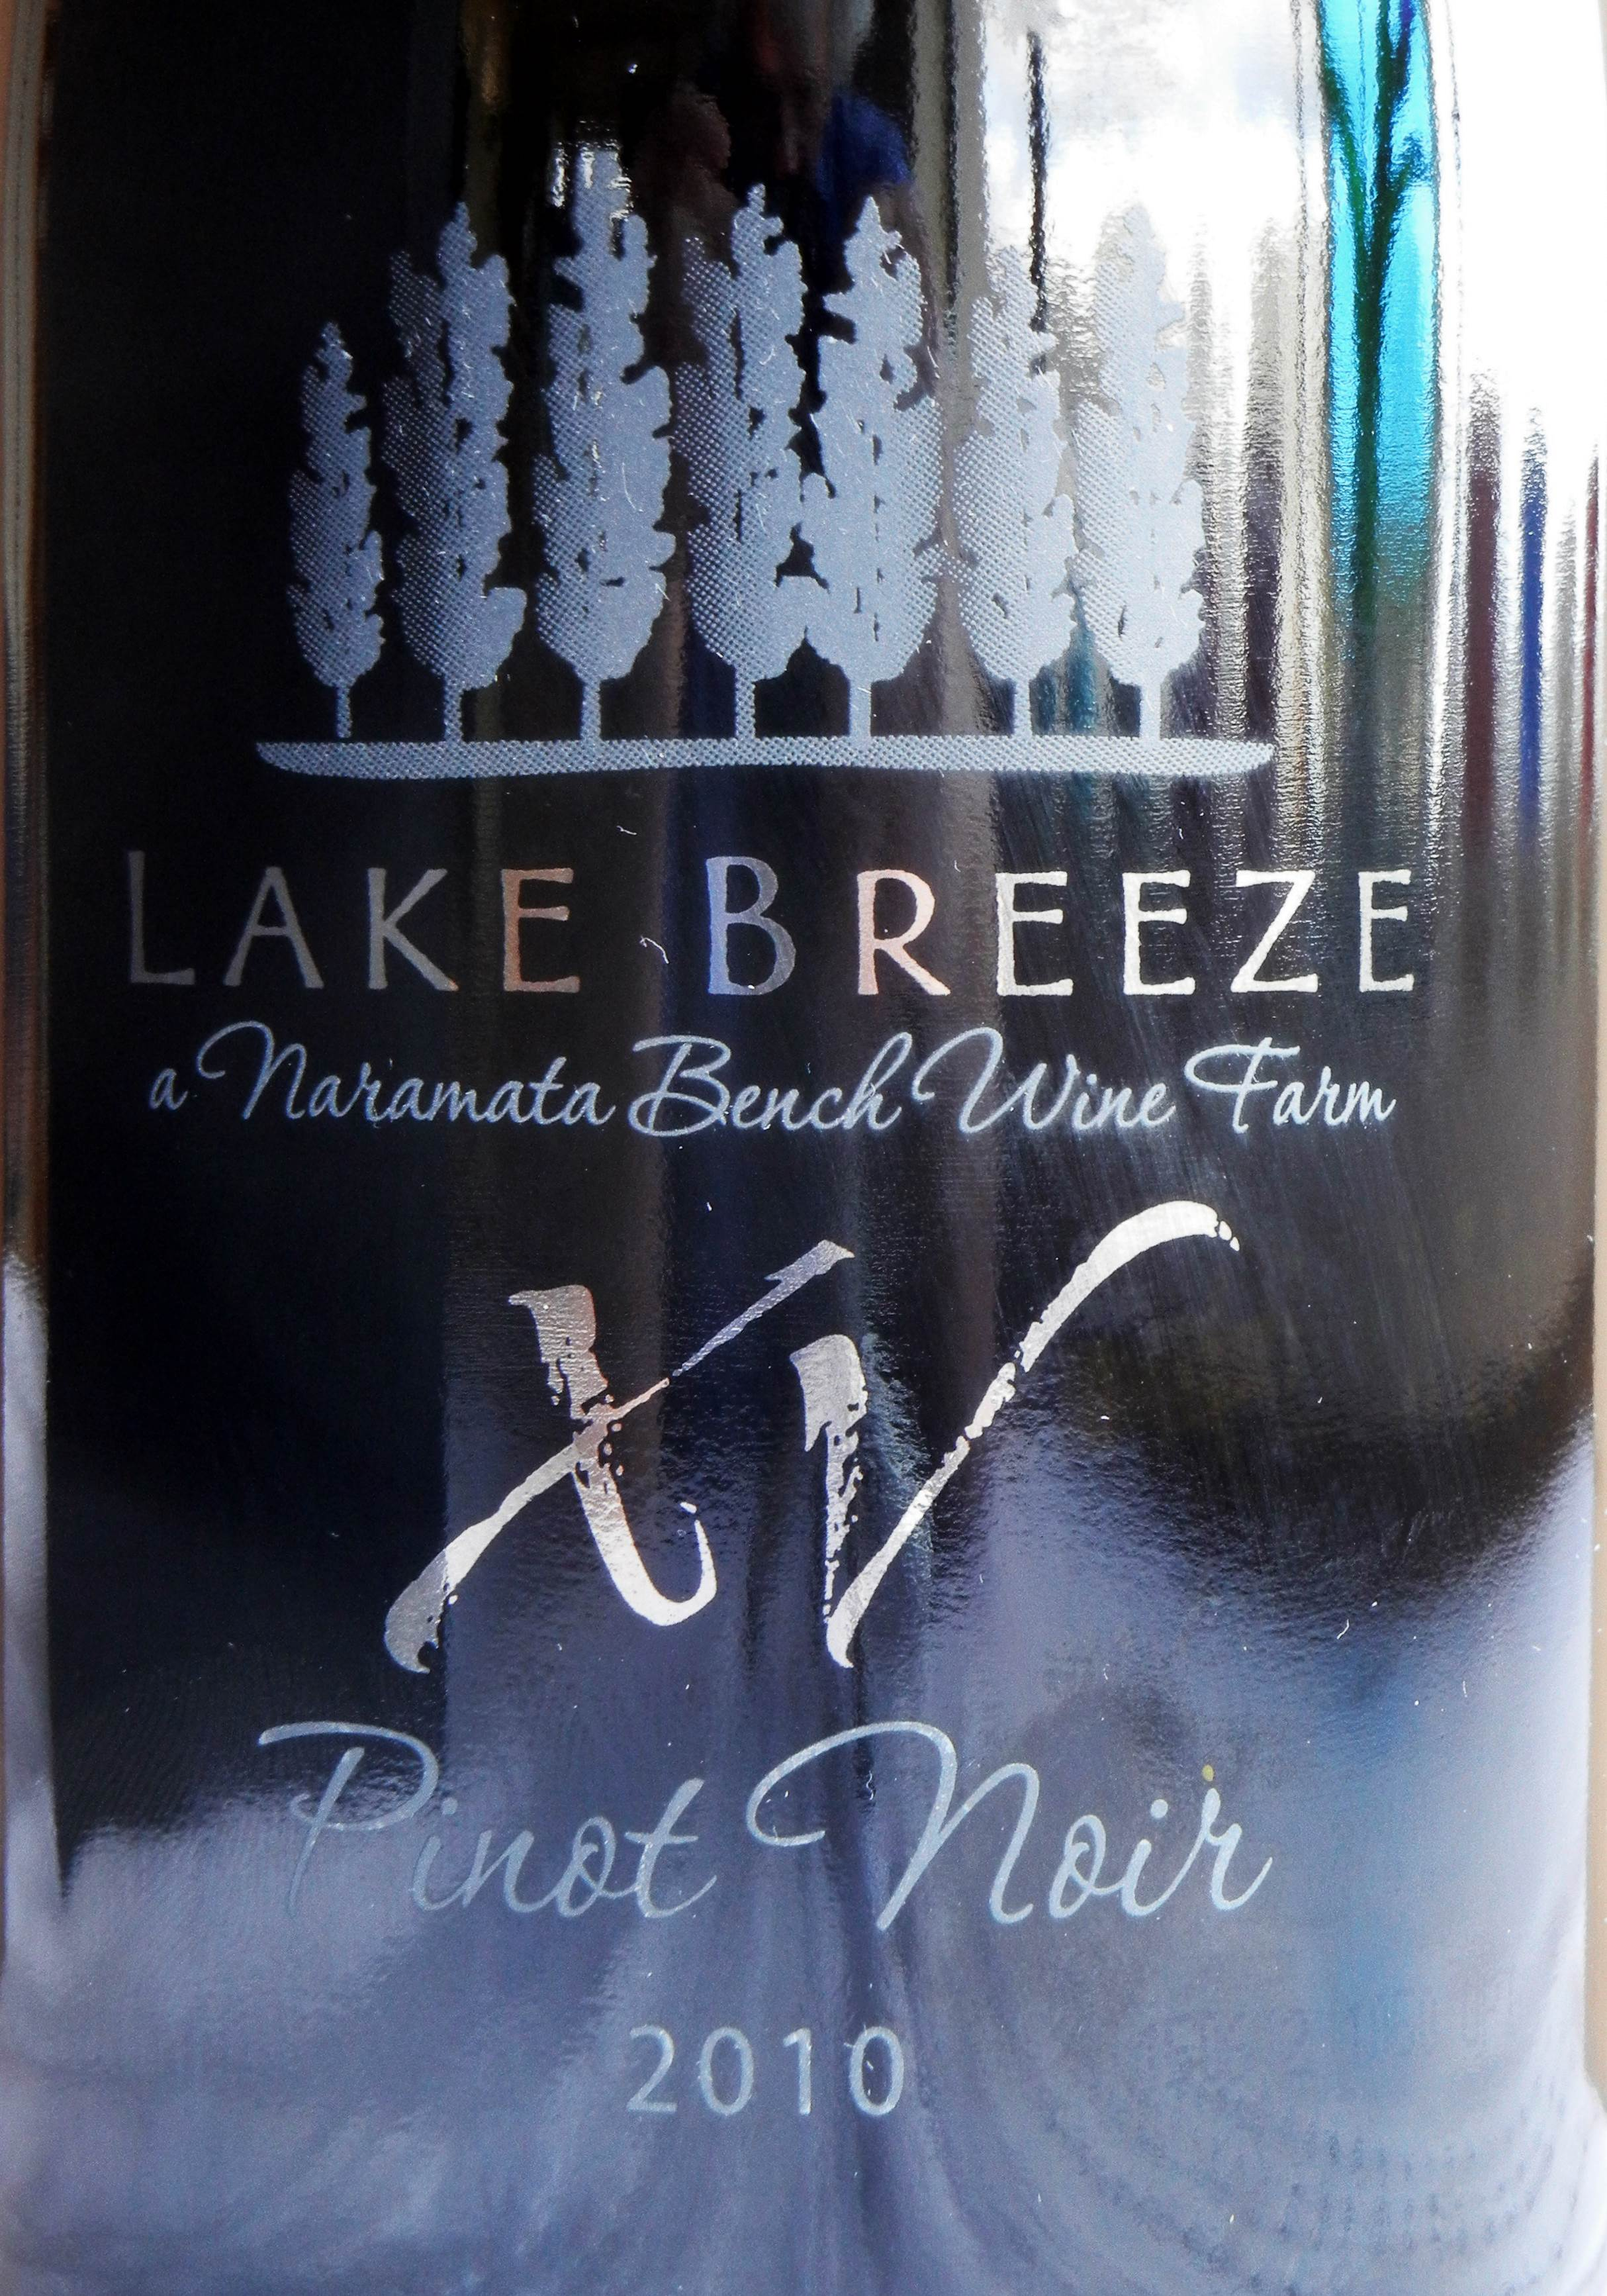 Lake Breeze XV Pinot Noir 2010 Label - BC Pinot Noir Tasting Review 20